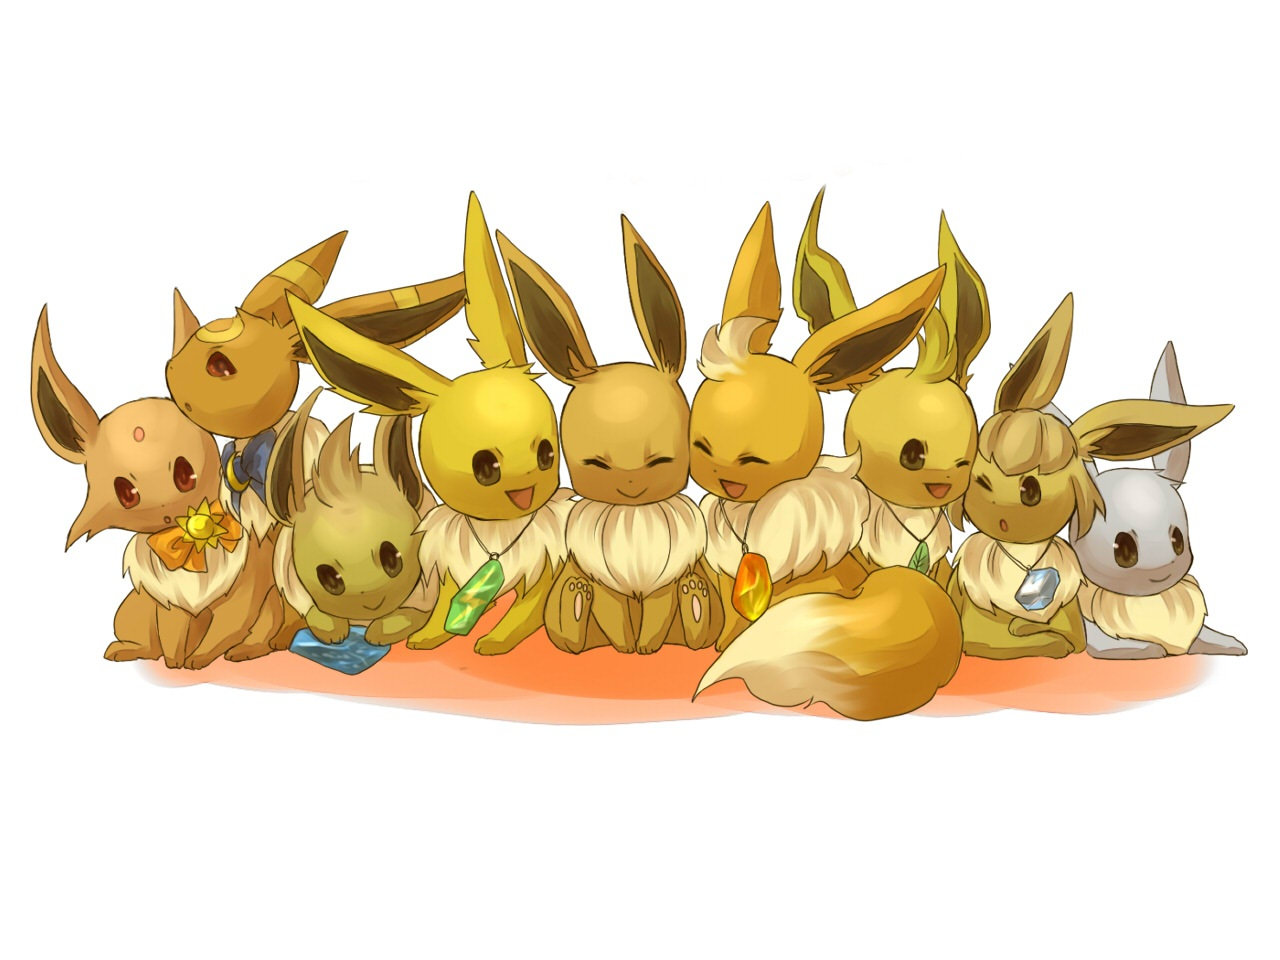 Eevee Pokemon Wallpaper 225571 Zerochan Anime Image Board